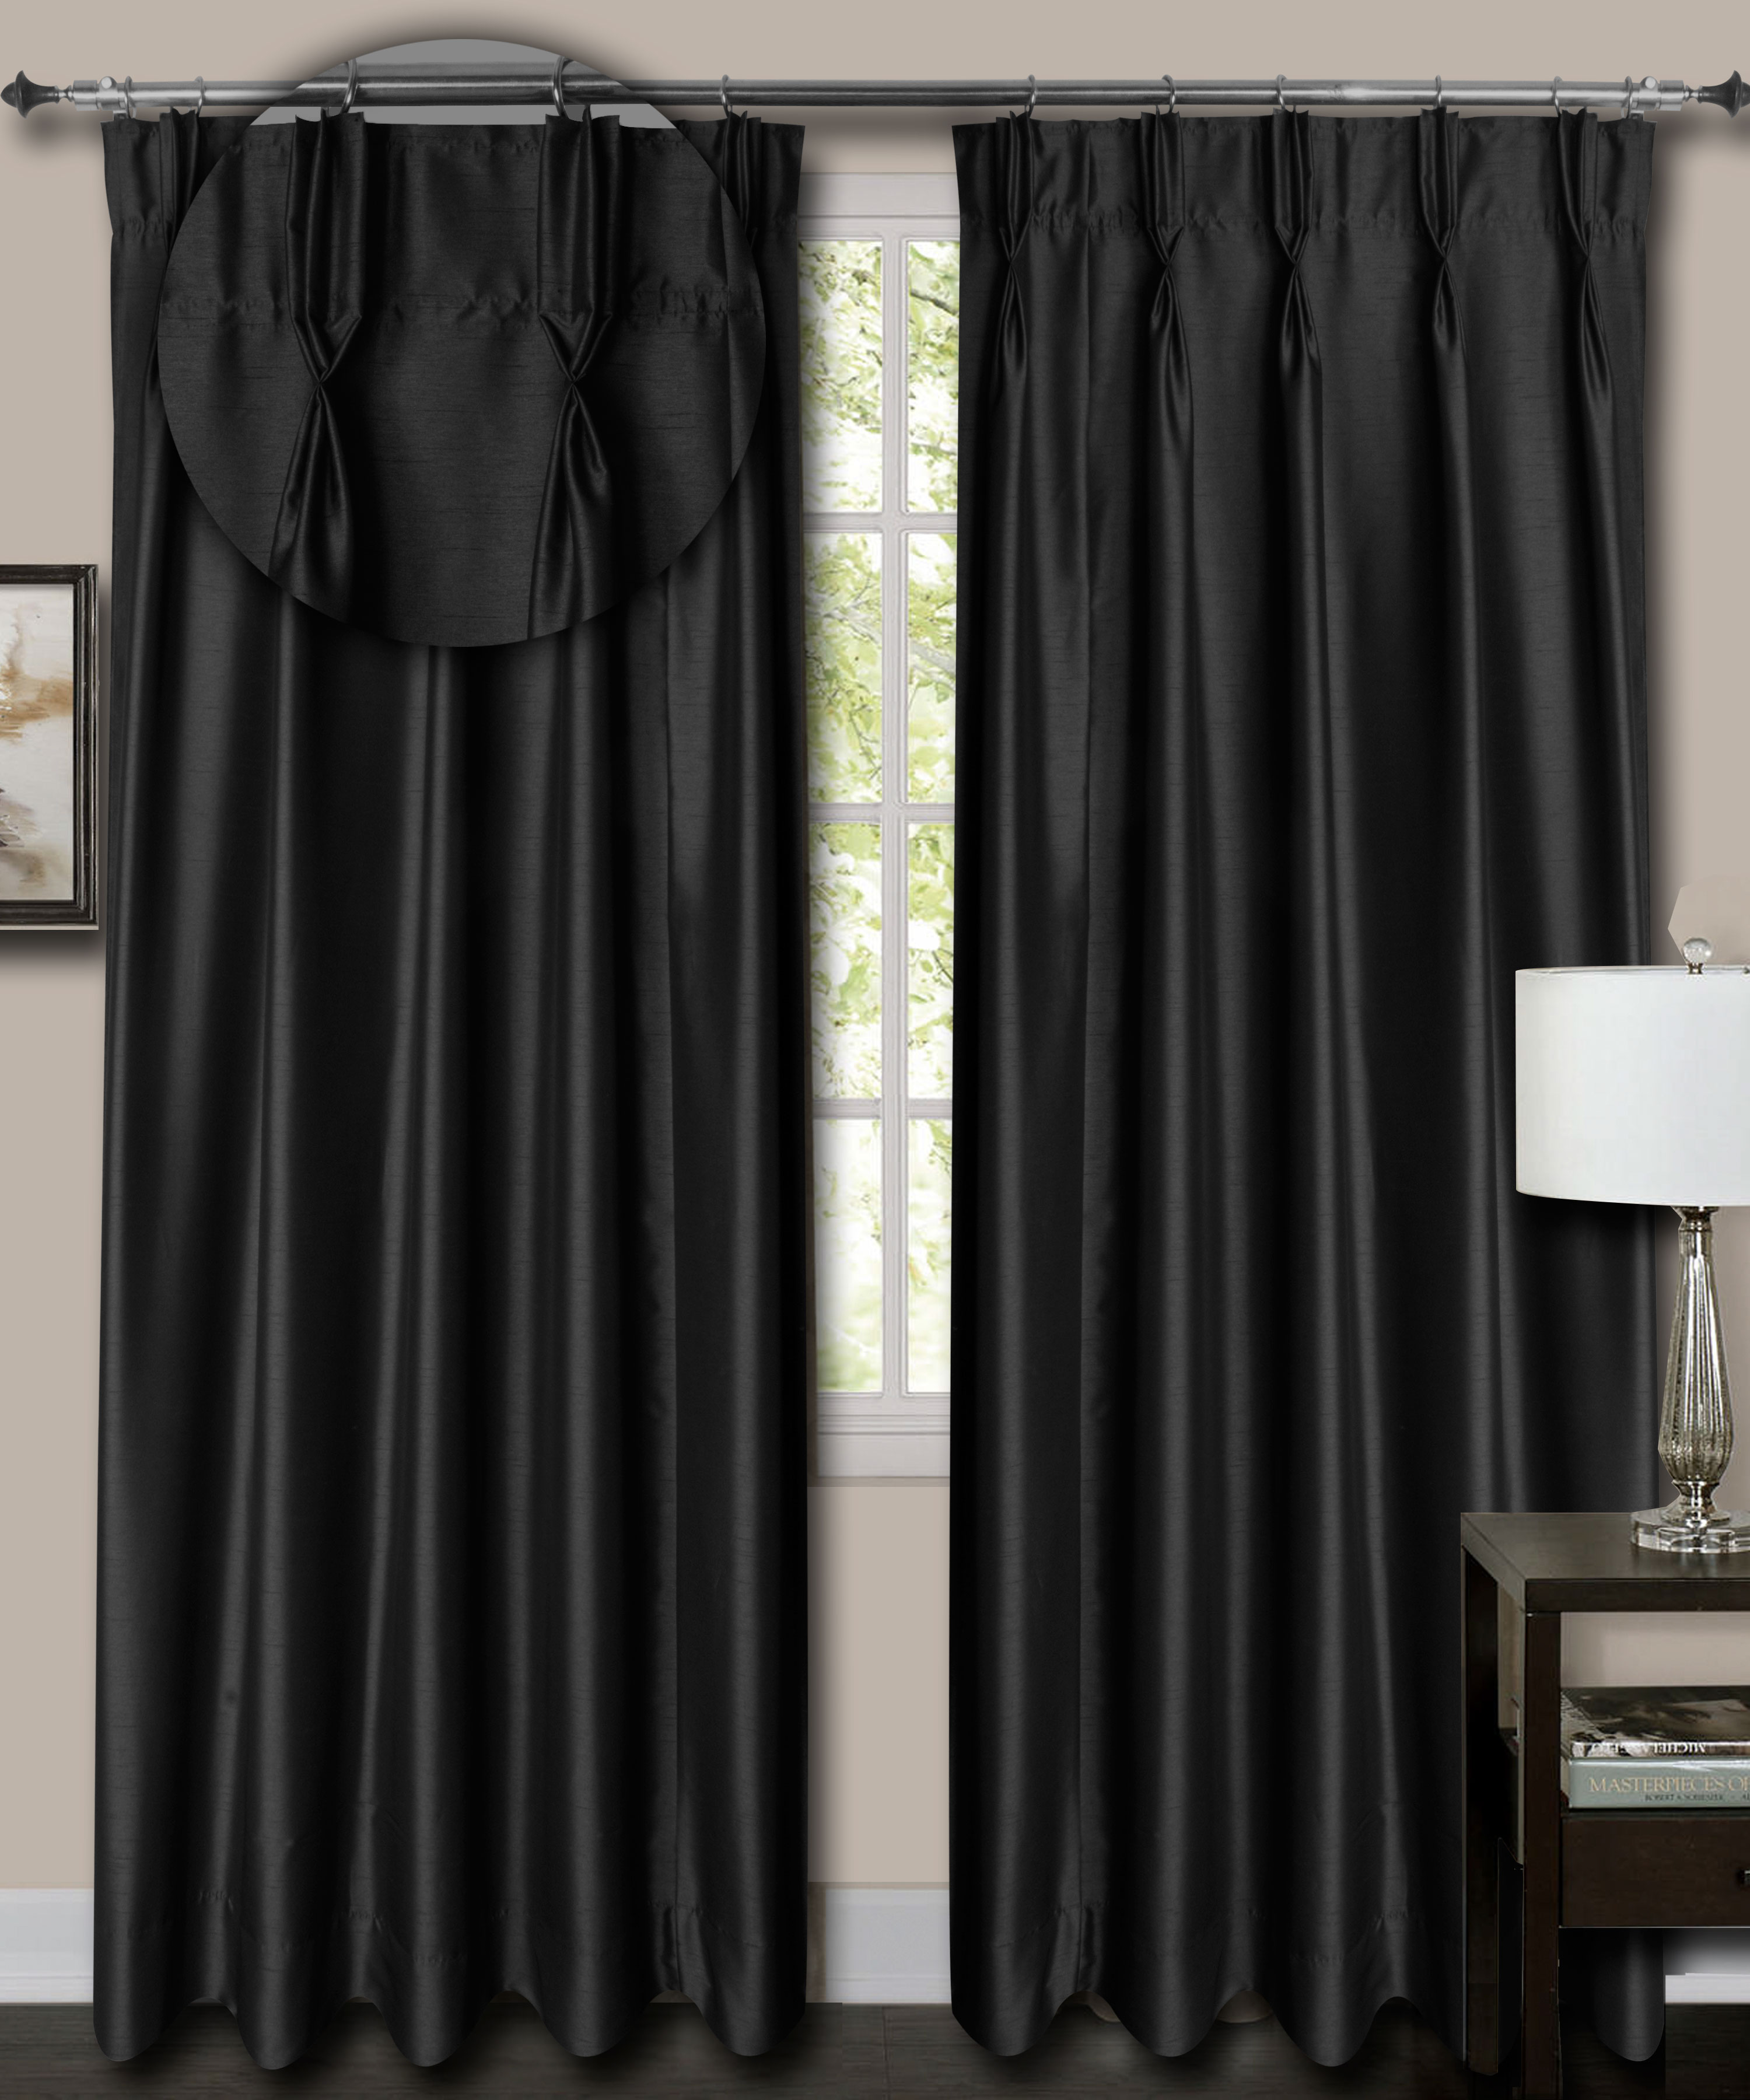 "French Pleat Top Black Faux Silk Dupioni Curtains. (39"" Wide, 13 Feet Long, Thick Lining)"